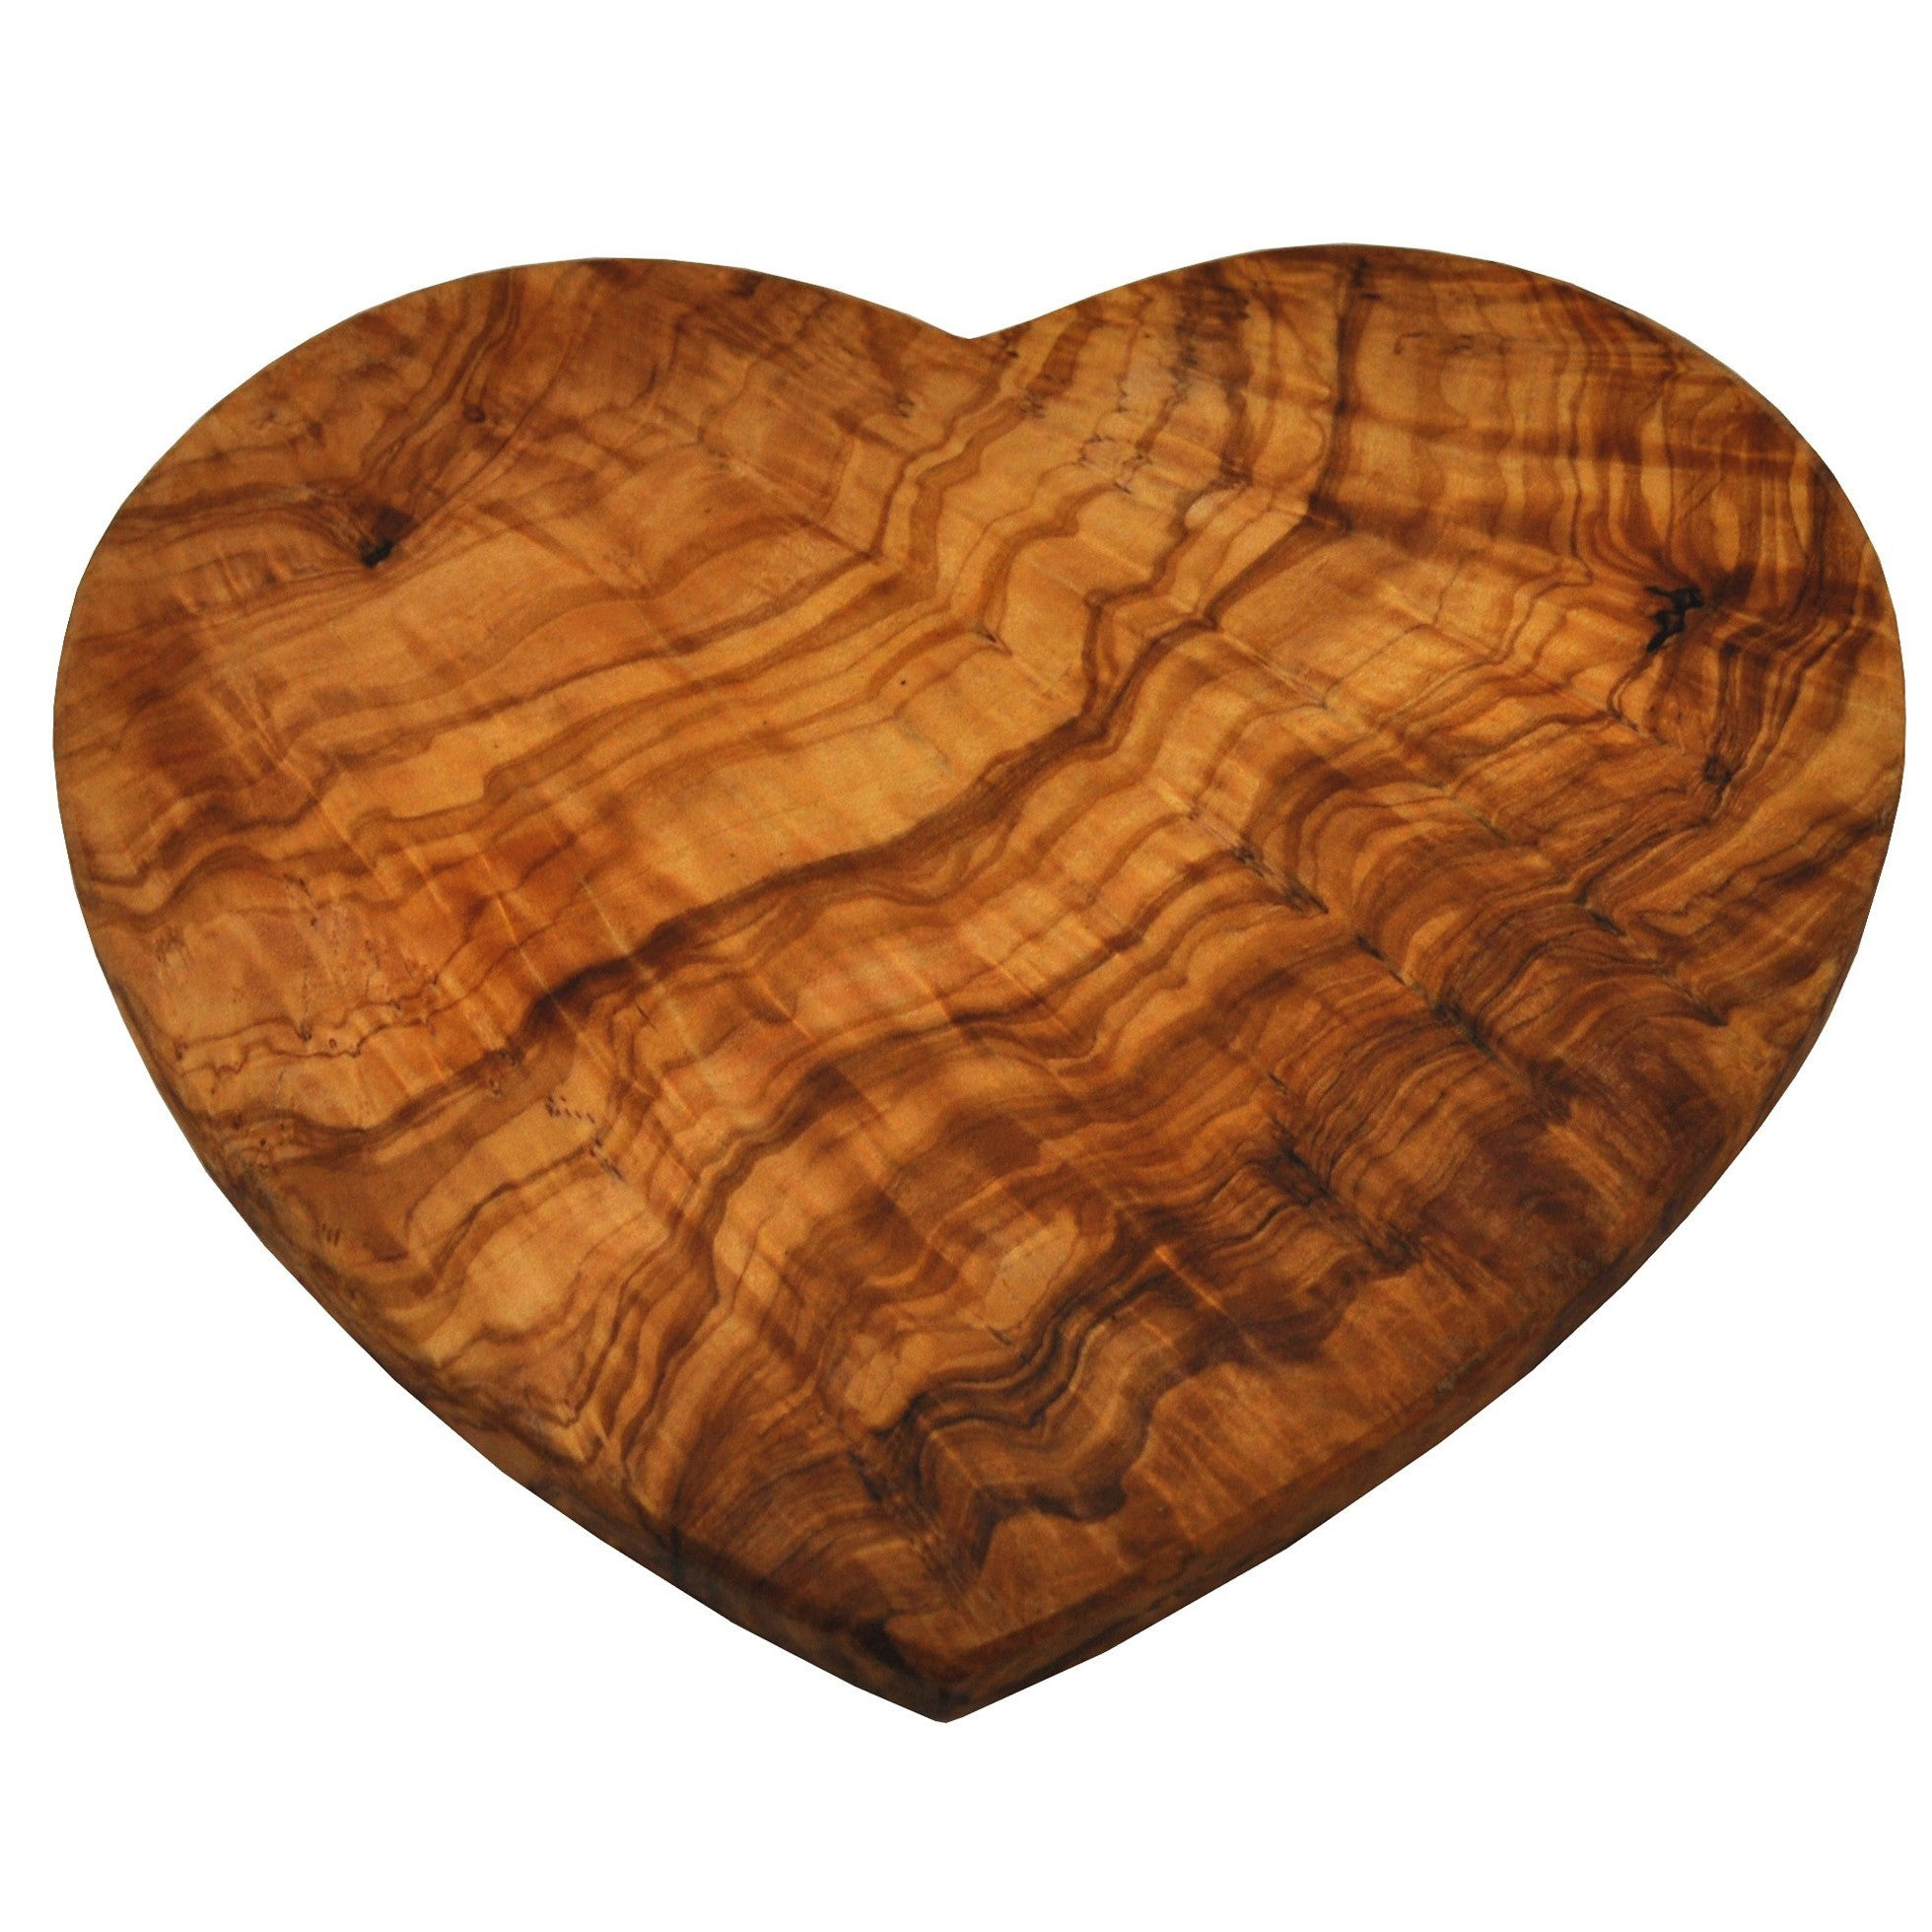 Heart-shaped wooden chopping board